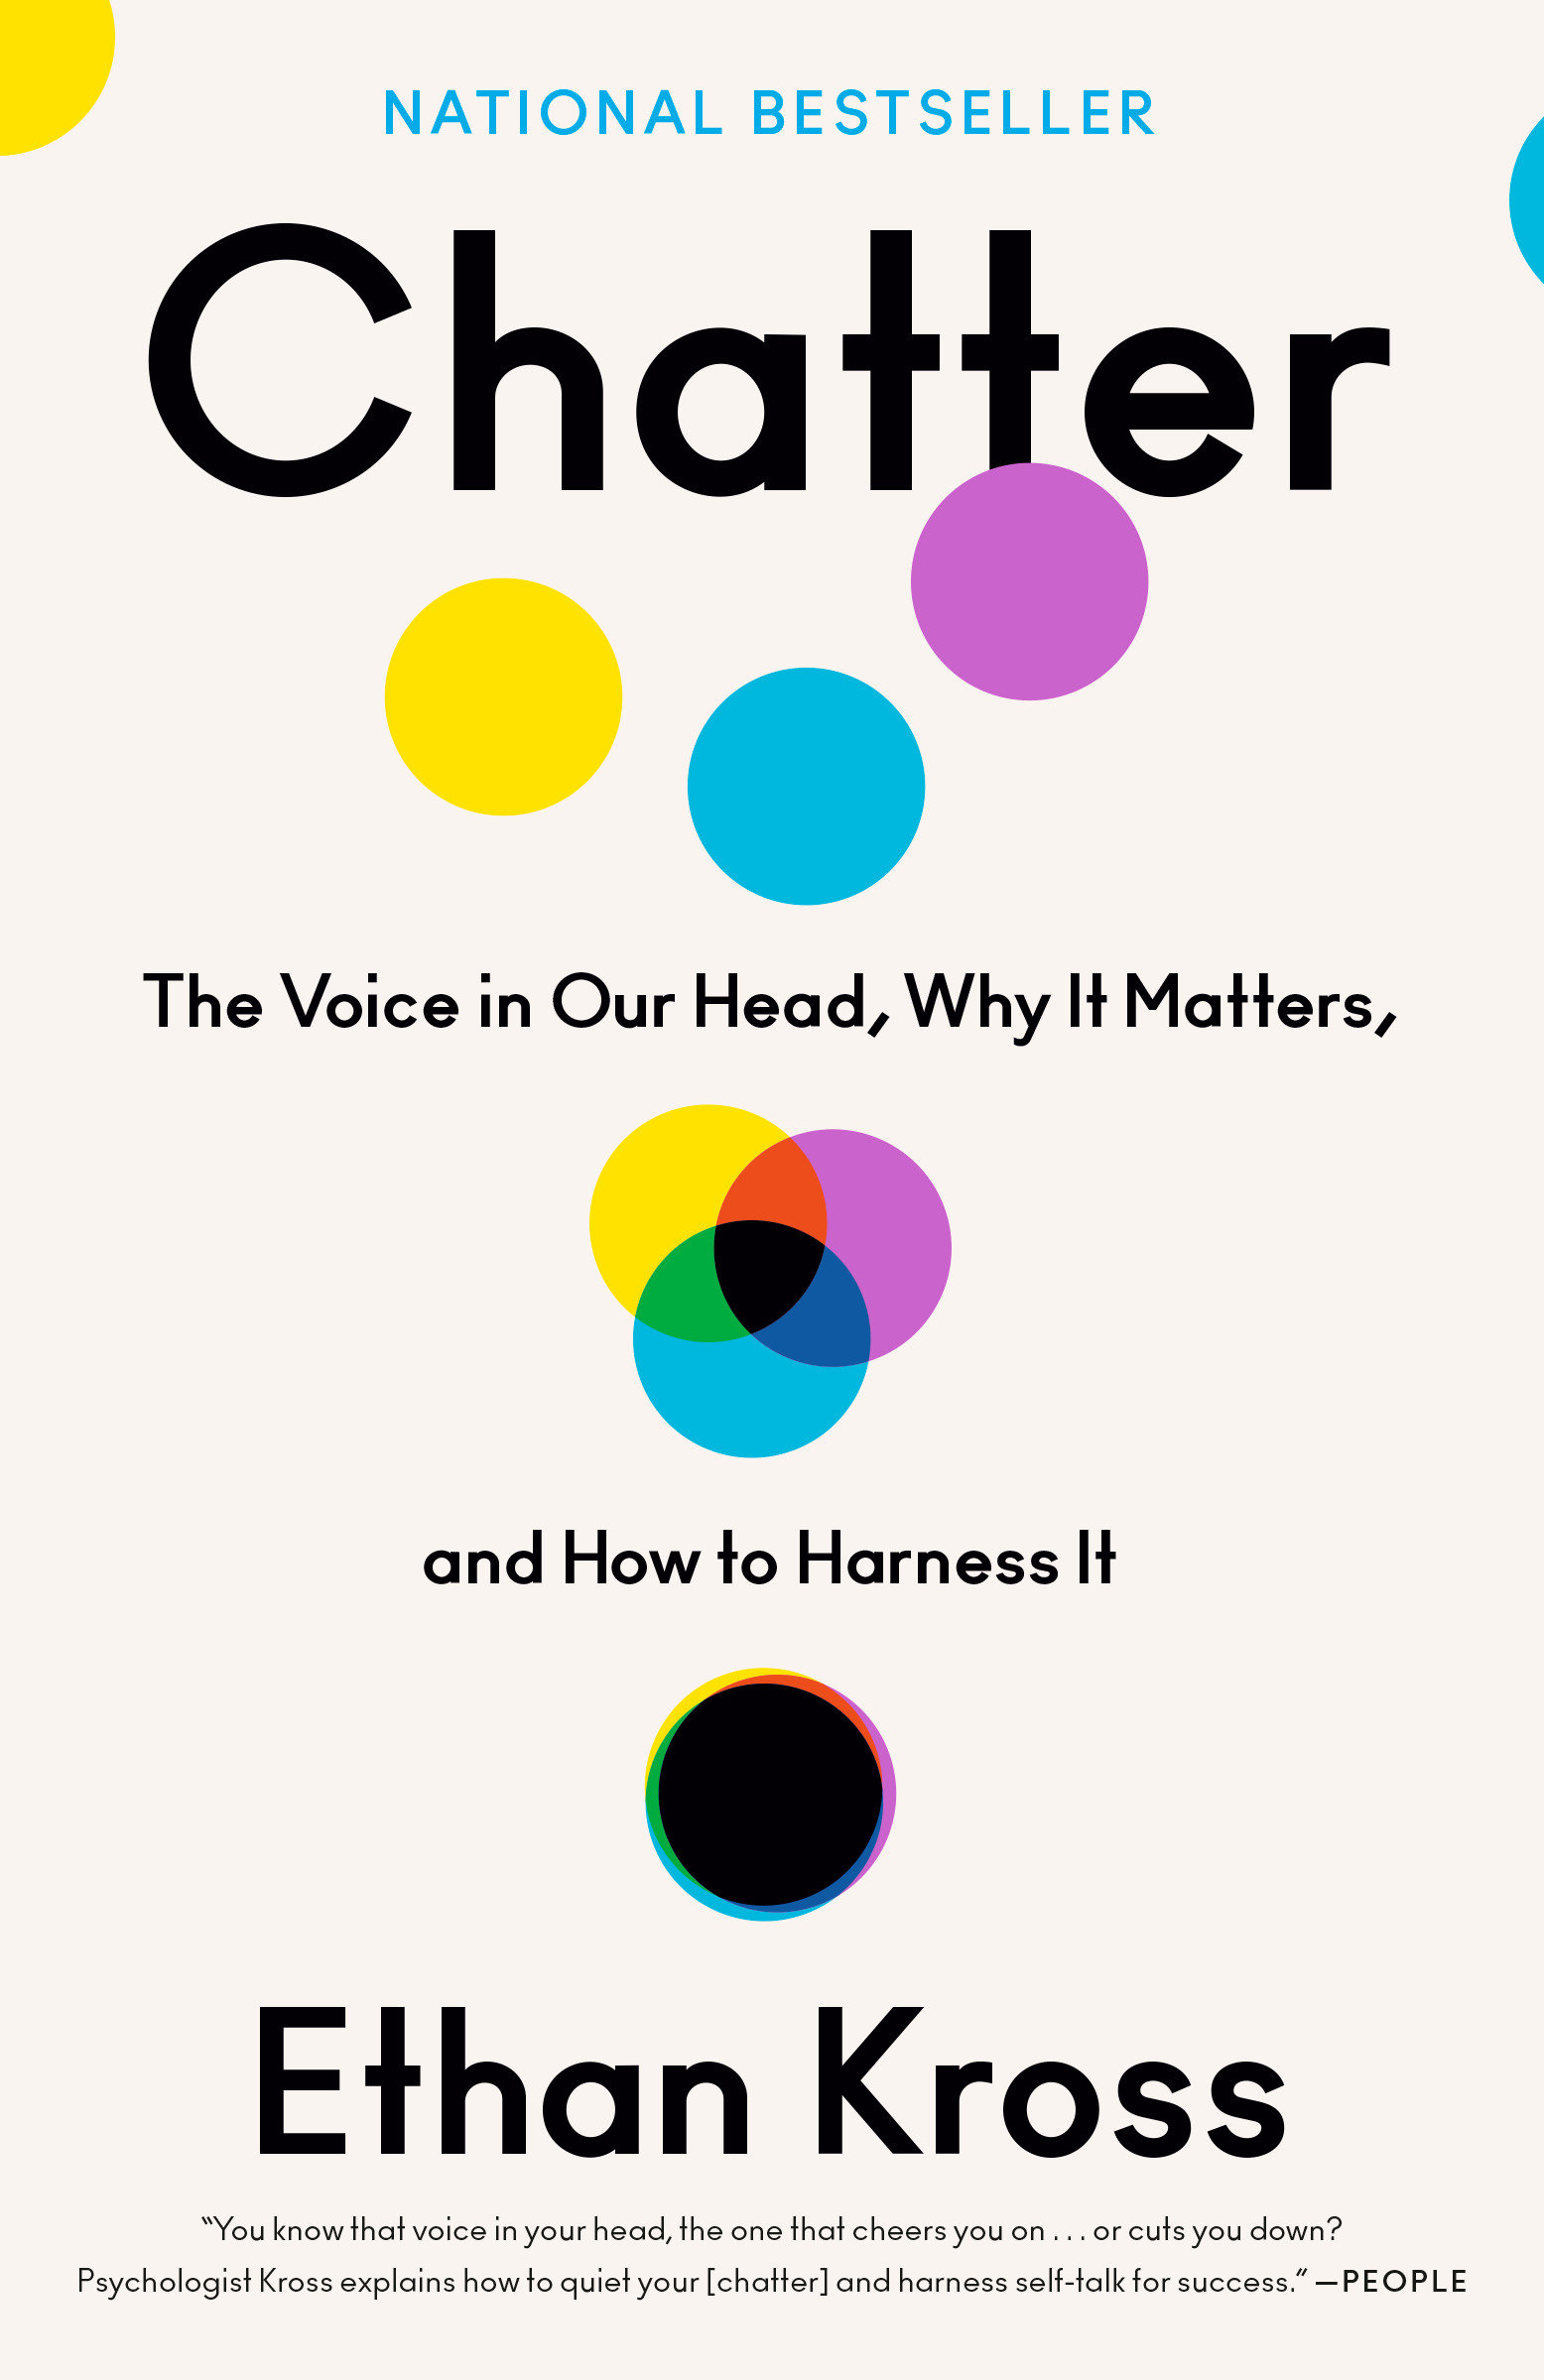 Chatter The Voice in Our Head, Why It Matters, and How to Harness It